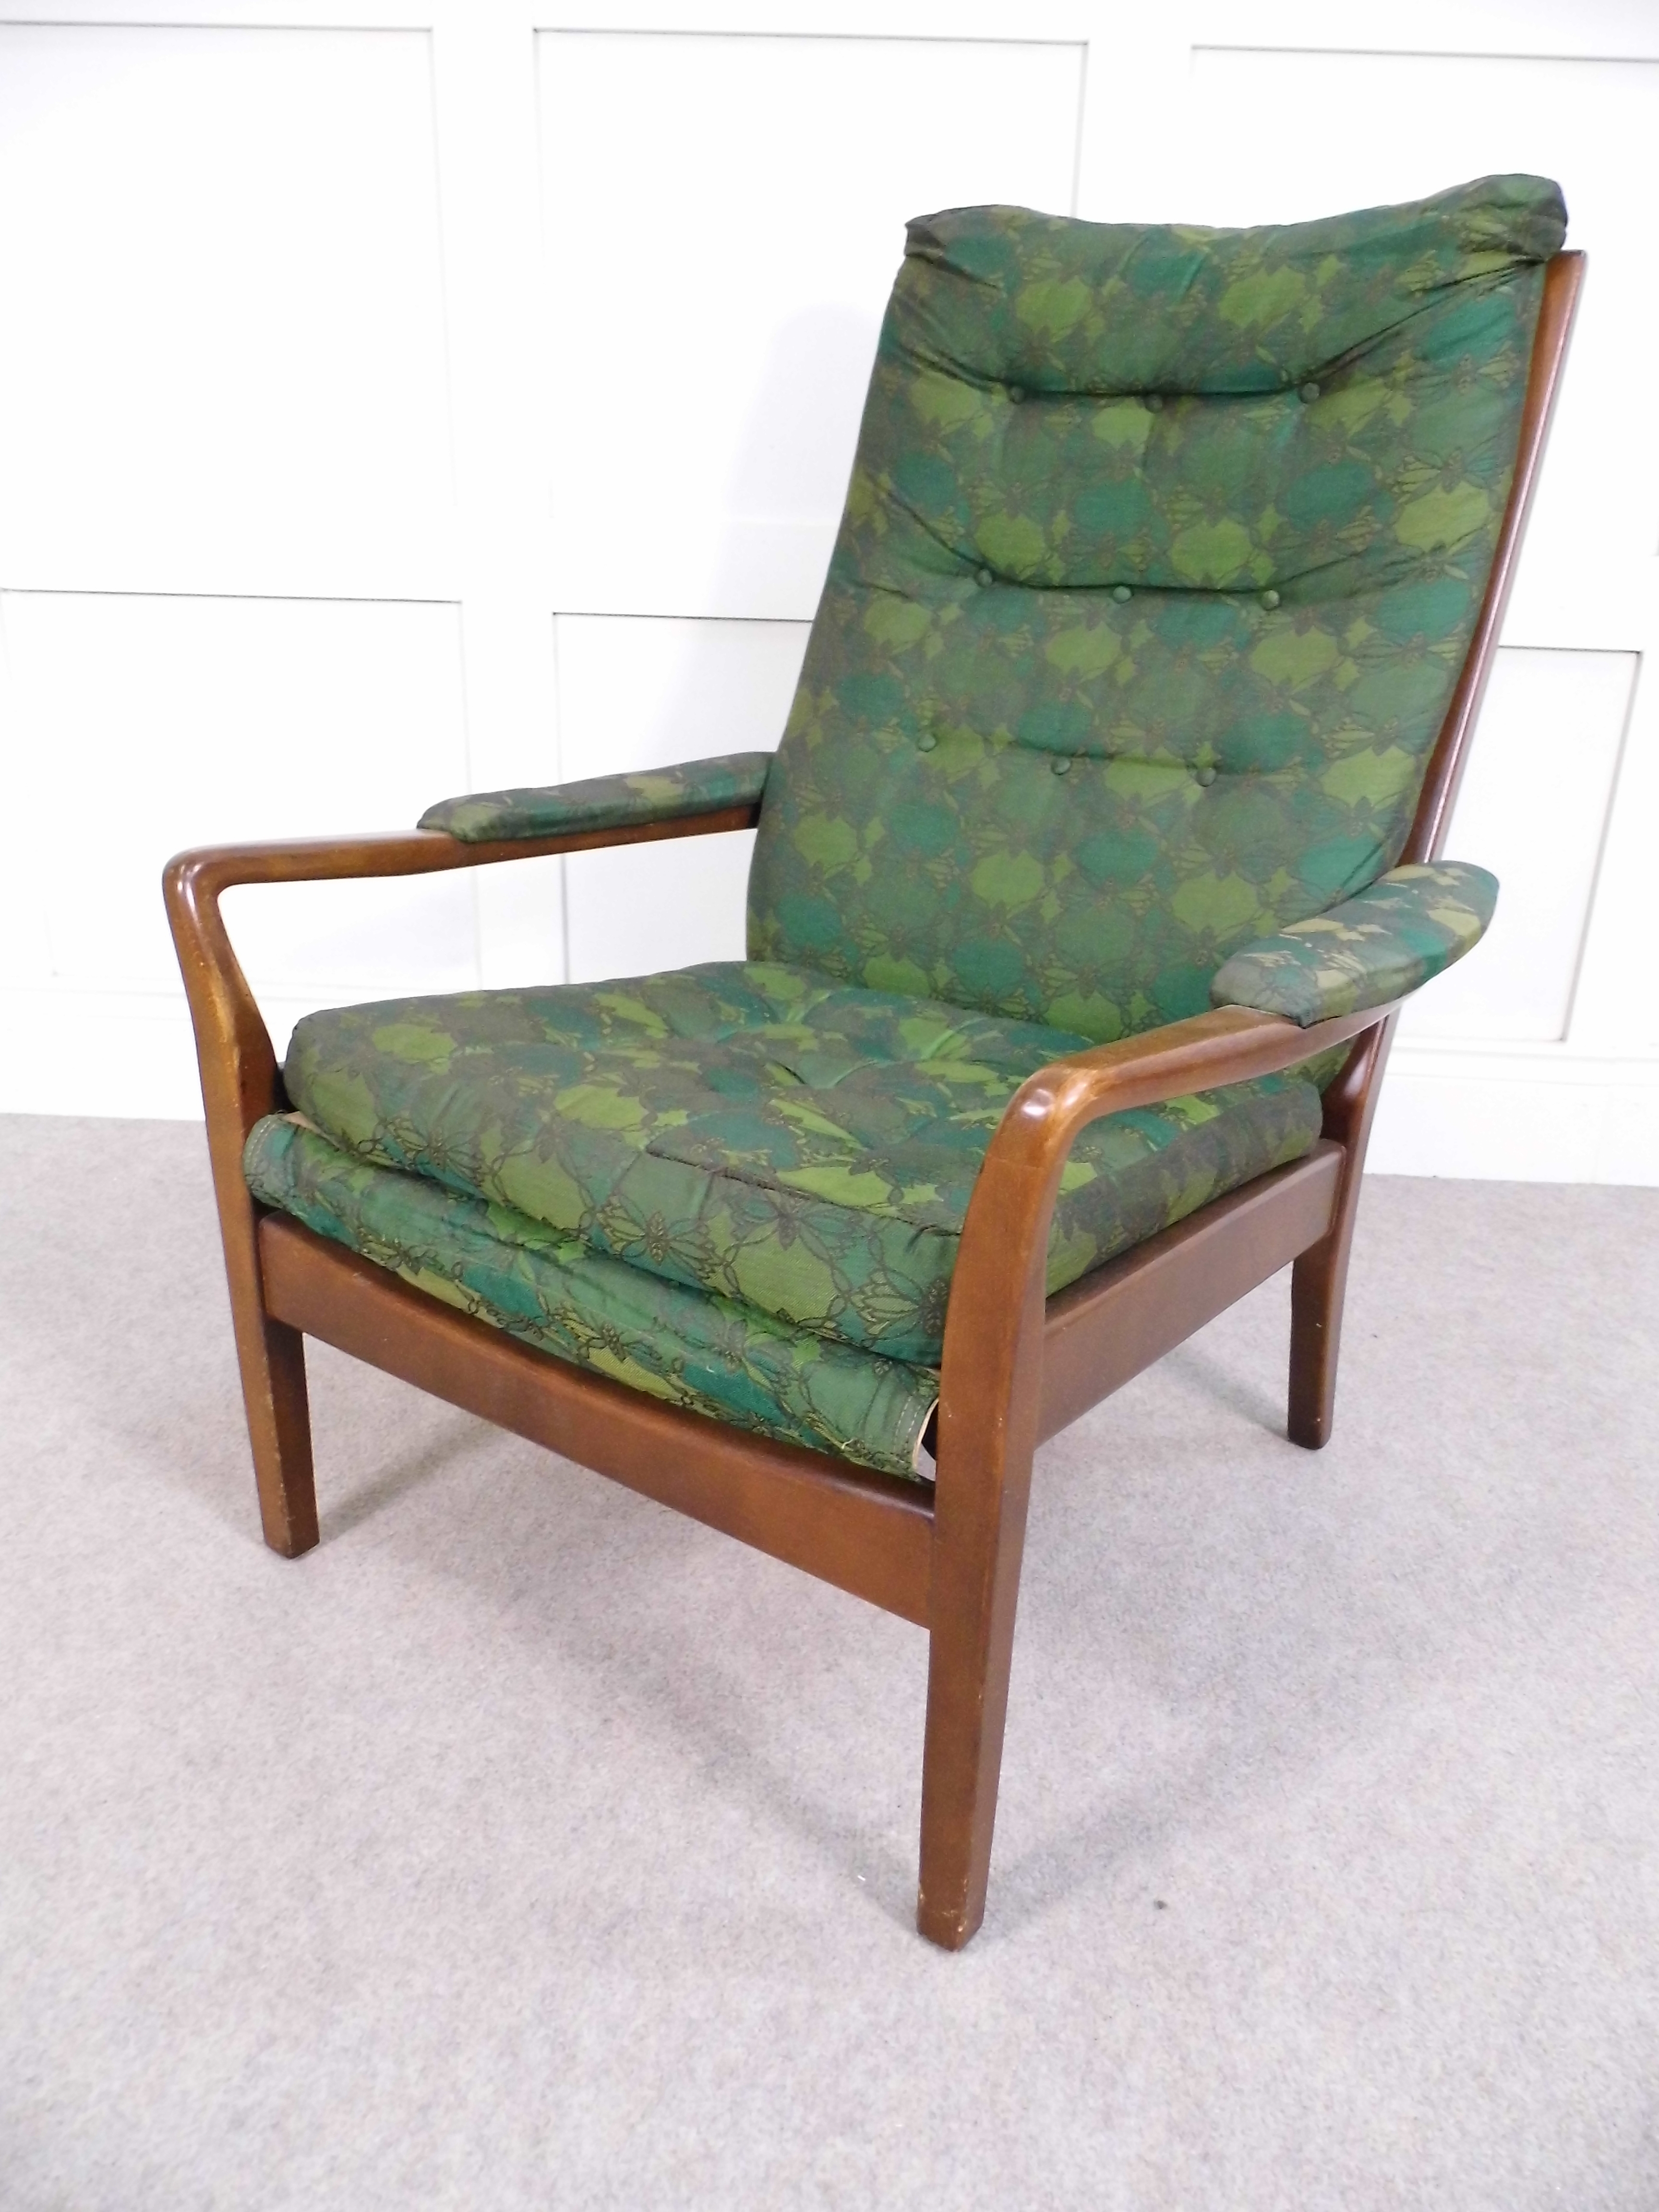 Impressive Elite Cintique Armchairs Throughout Vintage Retro 1959 Cintique C5 Deluxe Group Chair Mid Century (Image 10 of 15)